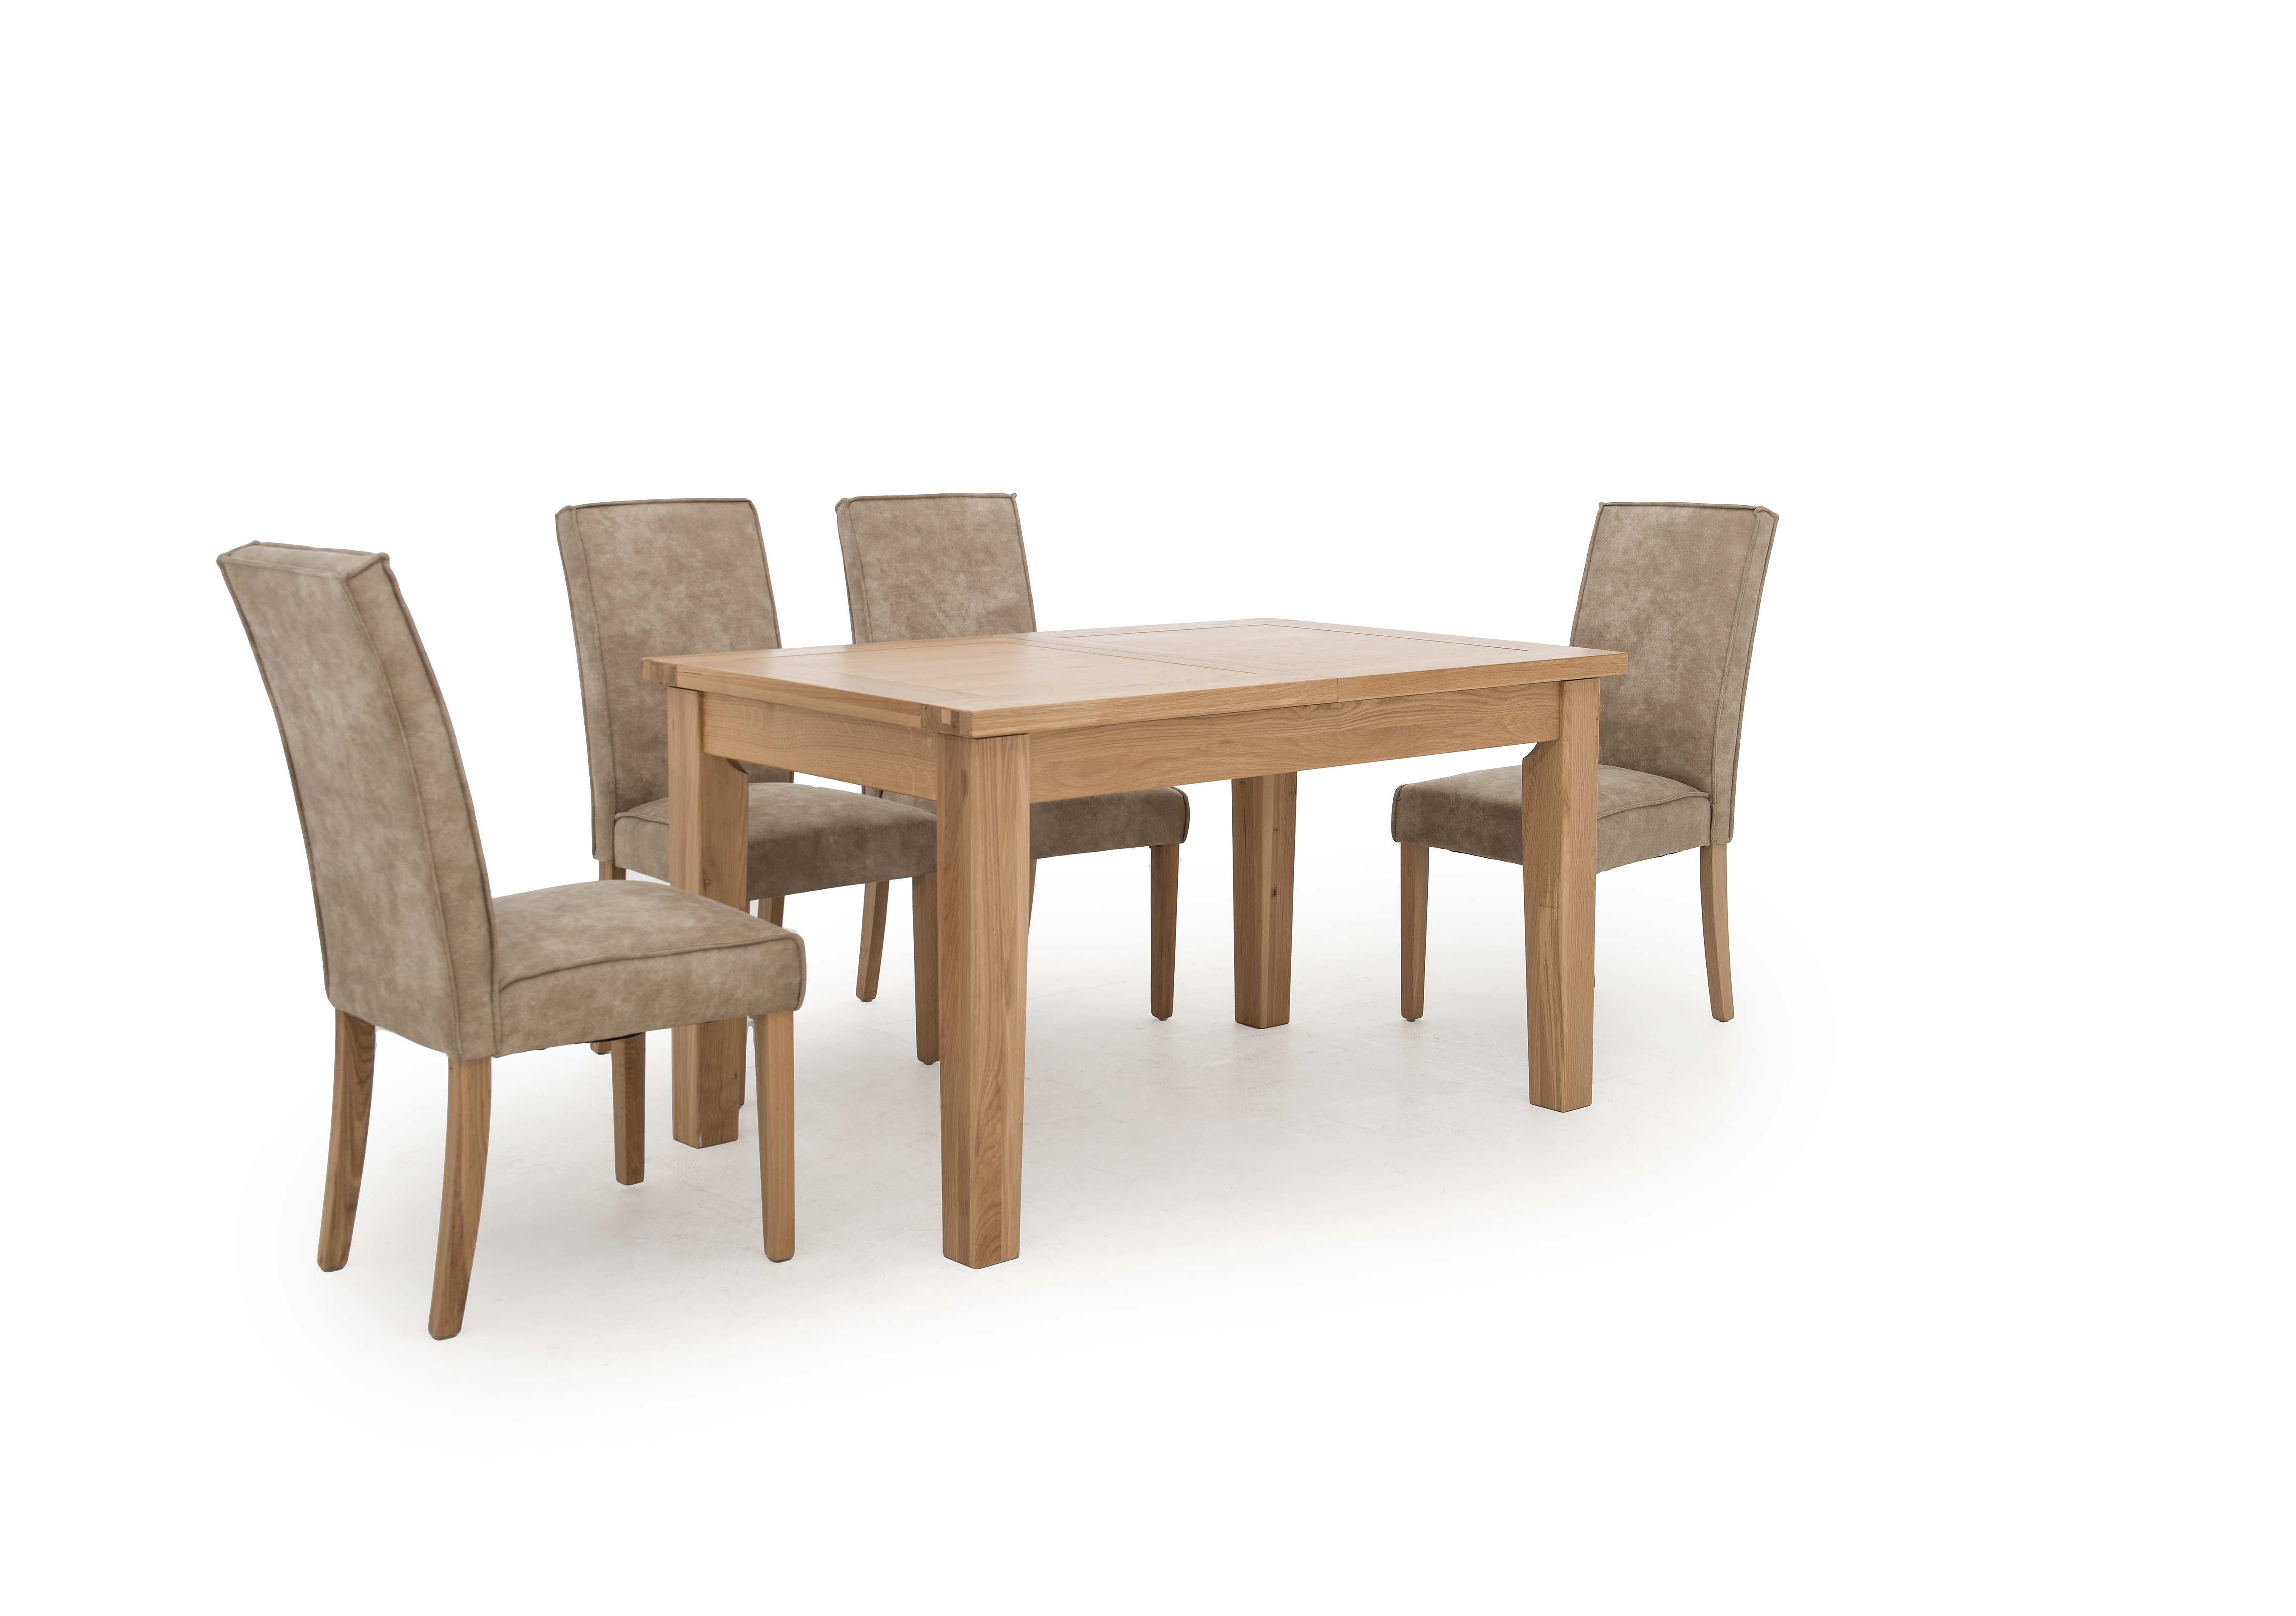 california extending rectangle dining table and 4 faux suede furnitureland california extending rectangle dining table and 4 faux suede chairs